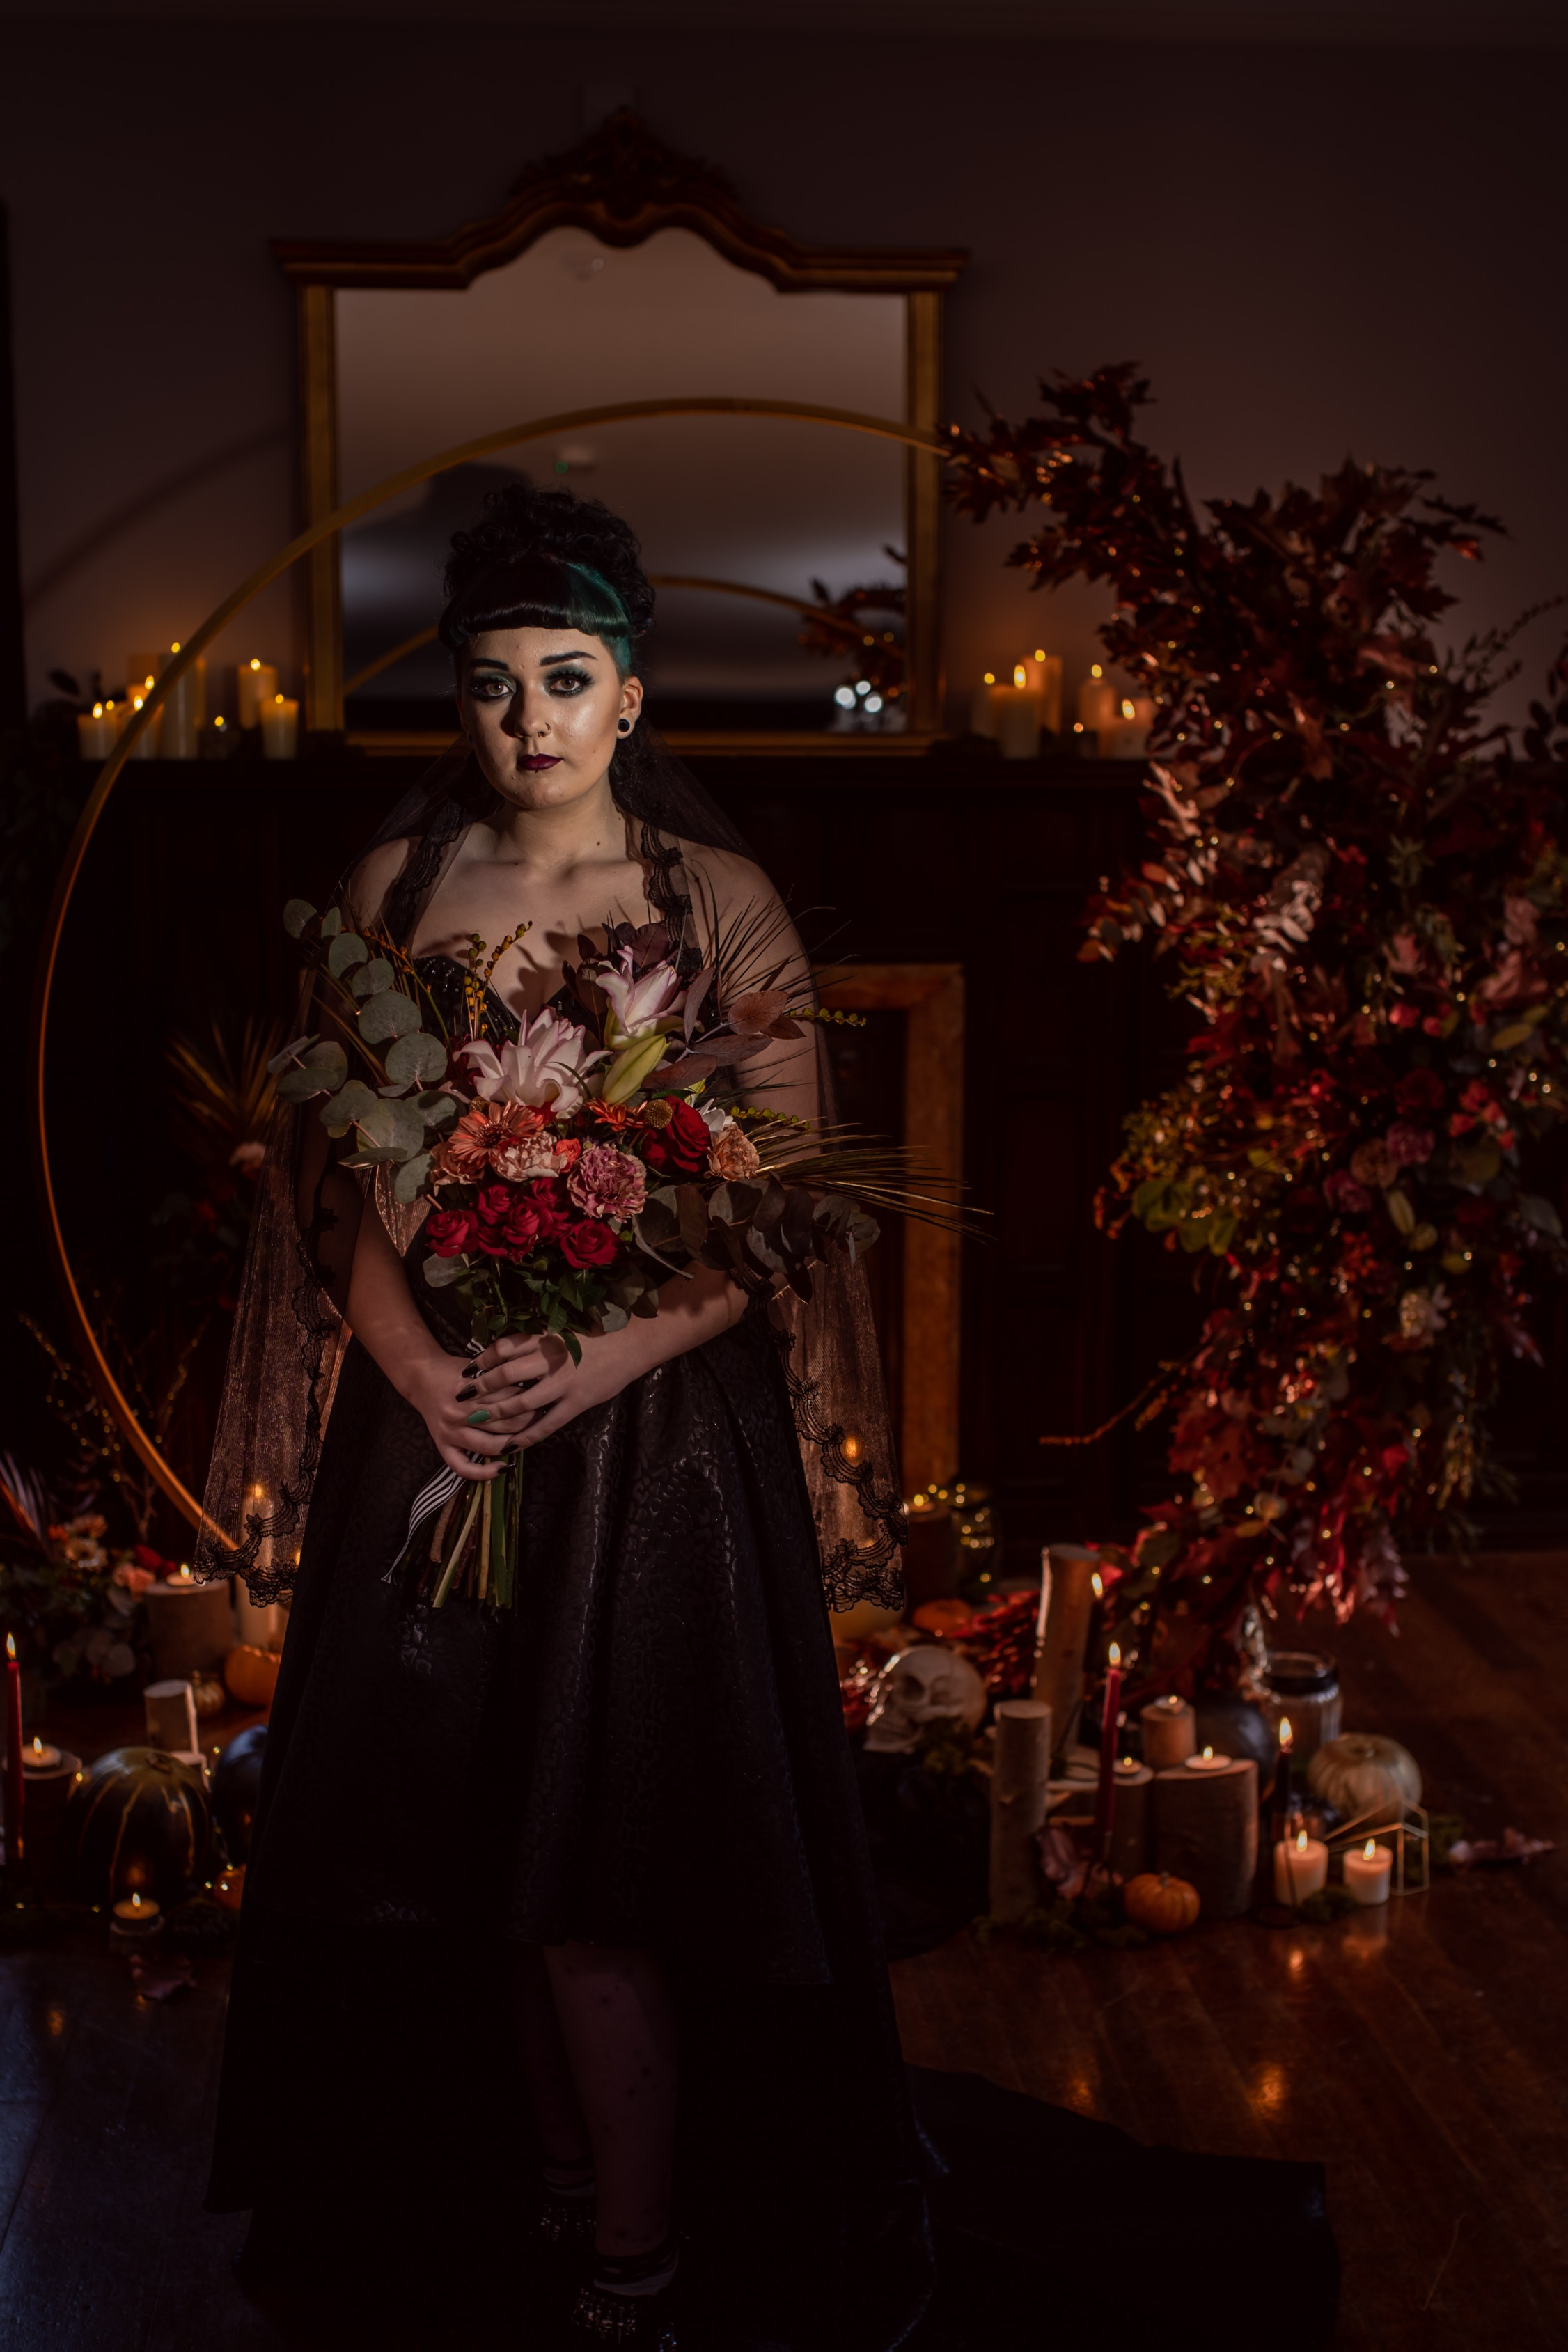 halloween bride - gothic halloween wedding set up - bride standing in front of dramatic floral arch in the candlelight with wedding bouquet - autumn colours of gold, copper and black